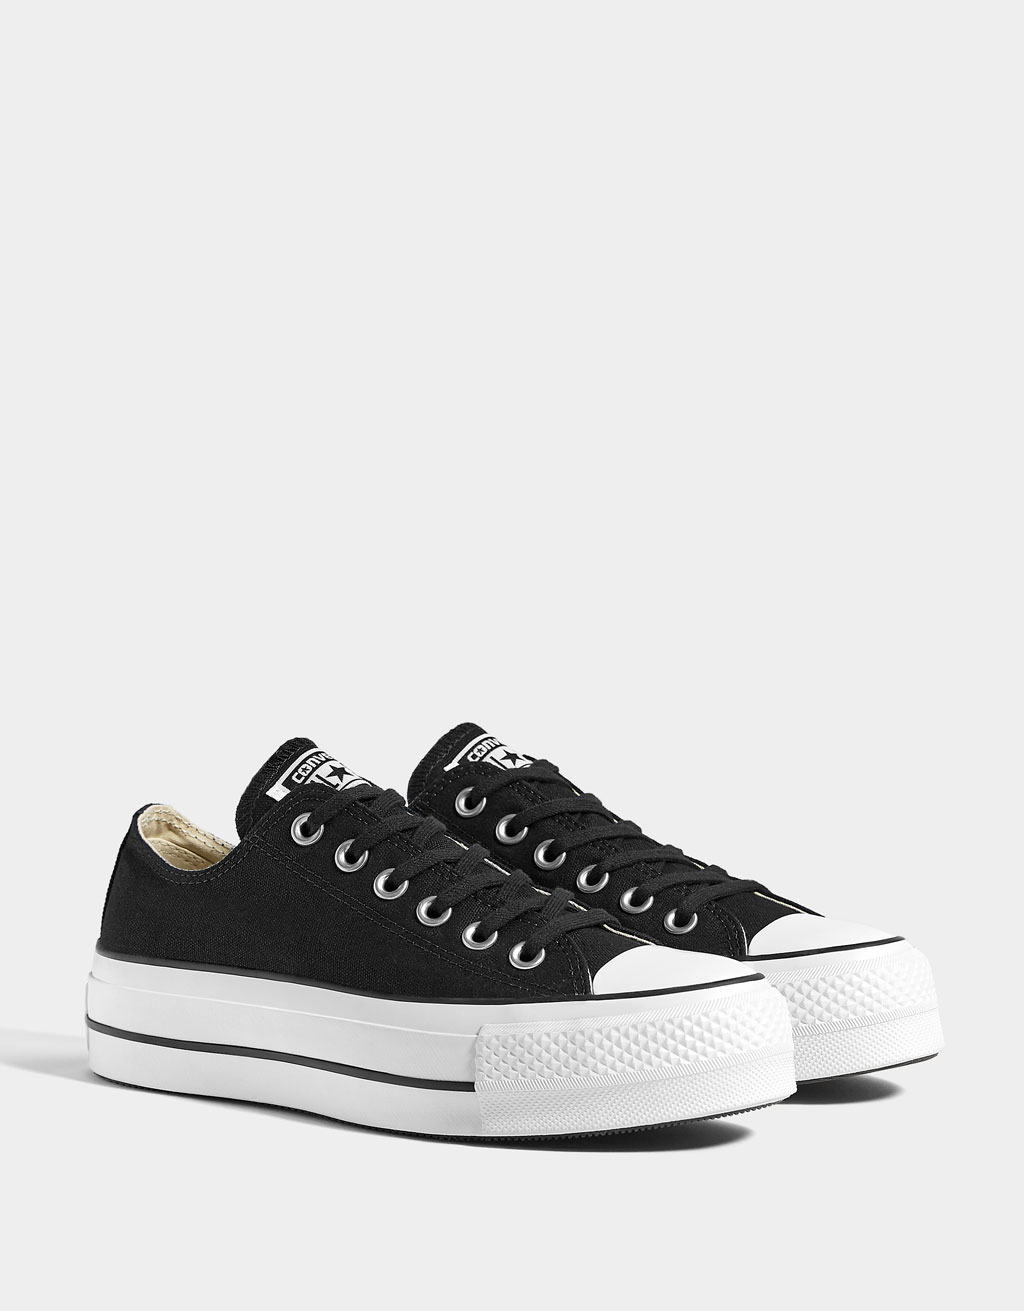 9495fd8a308684 CONVERSE CHUCK TAYLOR ALL STAR platform sneakers - Wedges and .